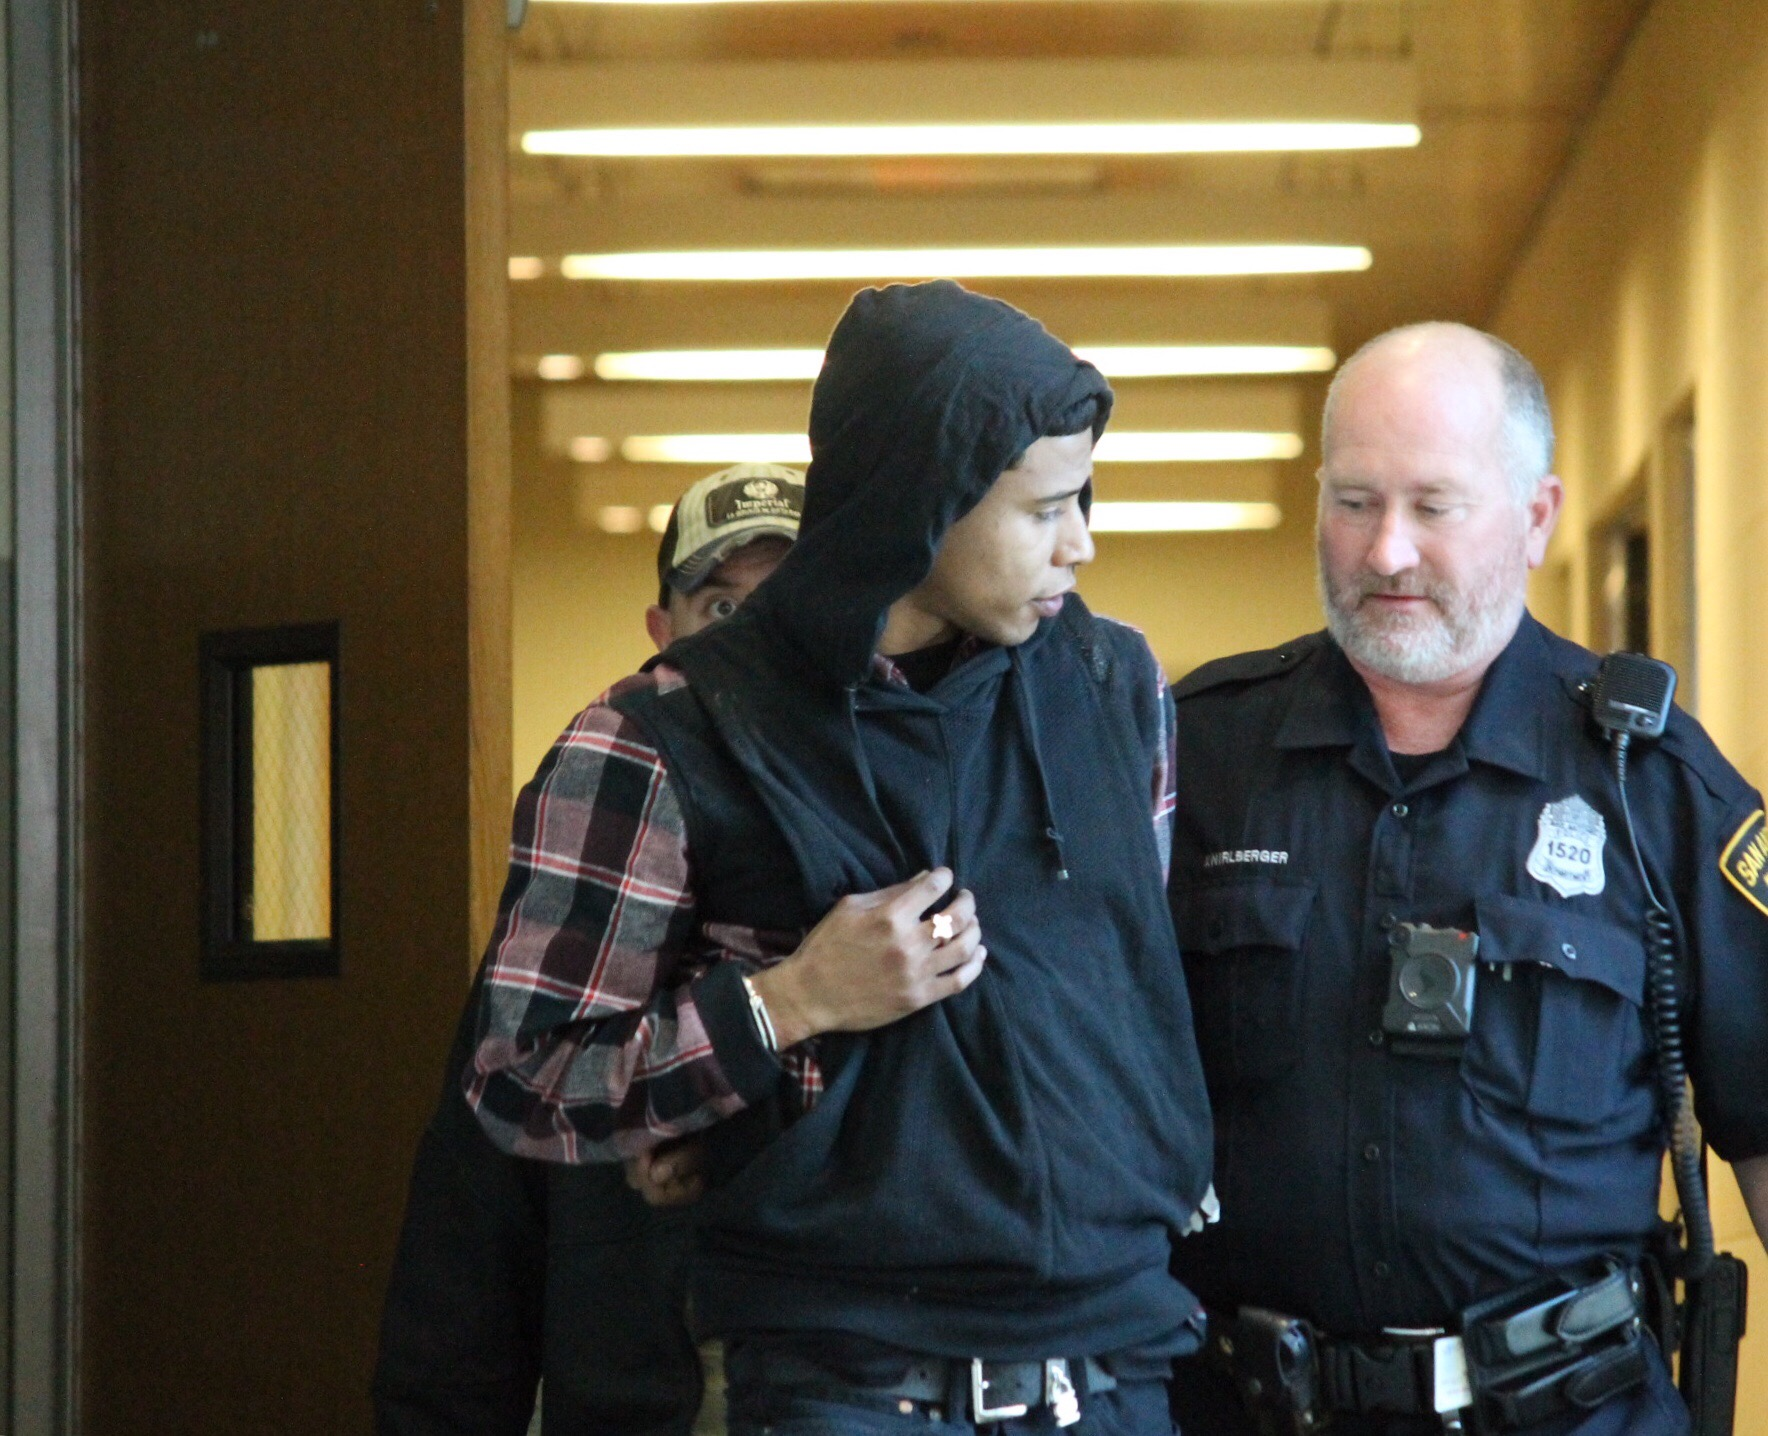 675dab15dc52ca Police release names of men arrested on sex trafficking charges at North  Side hotel - SFChronicle.com